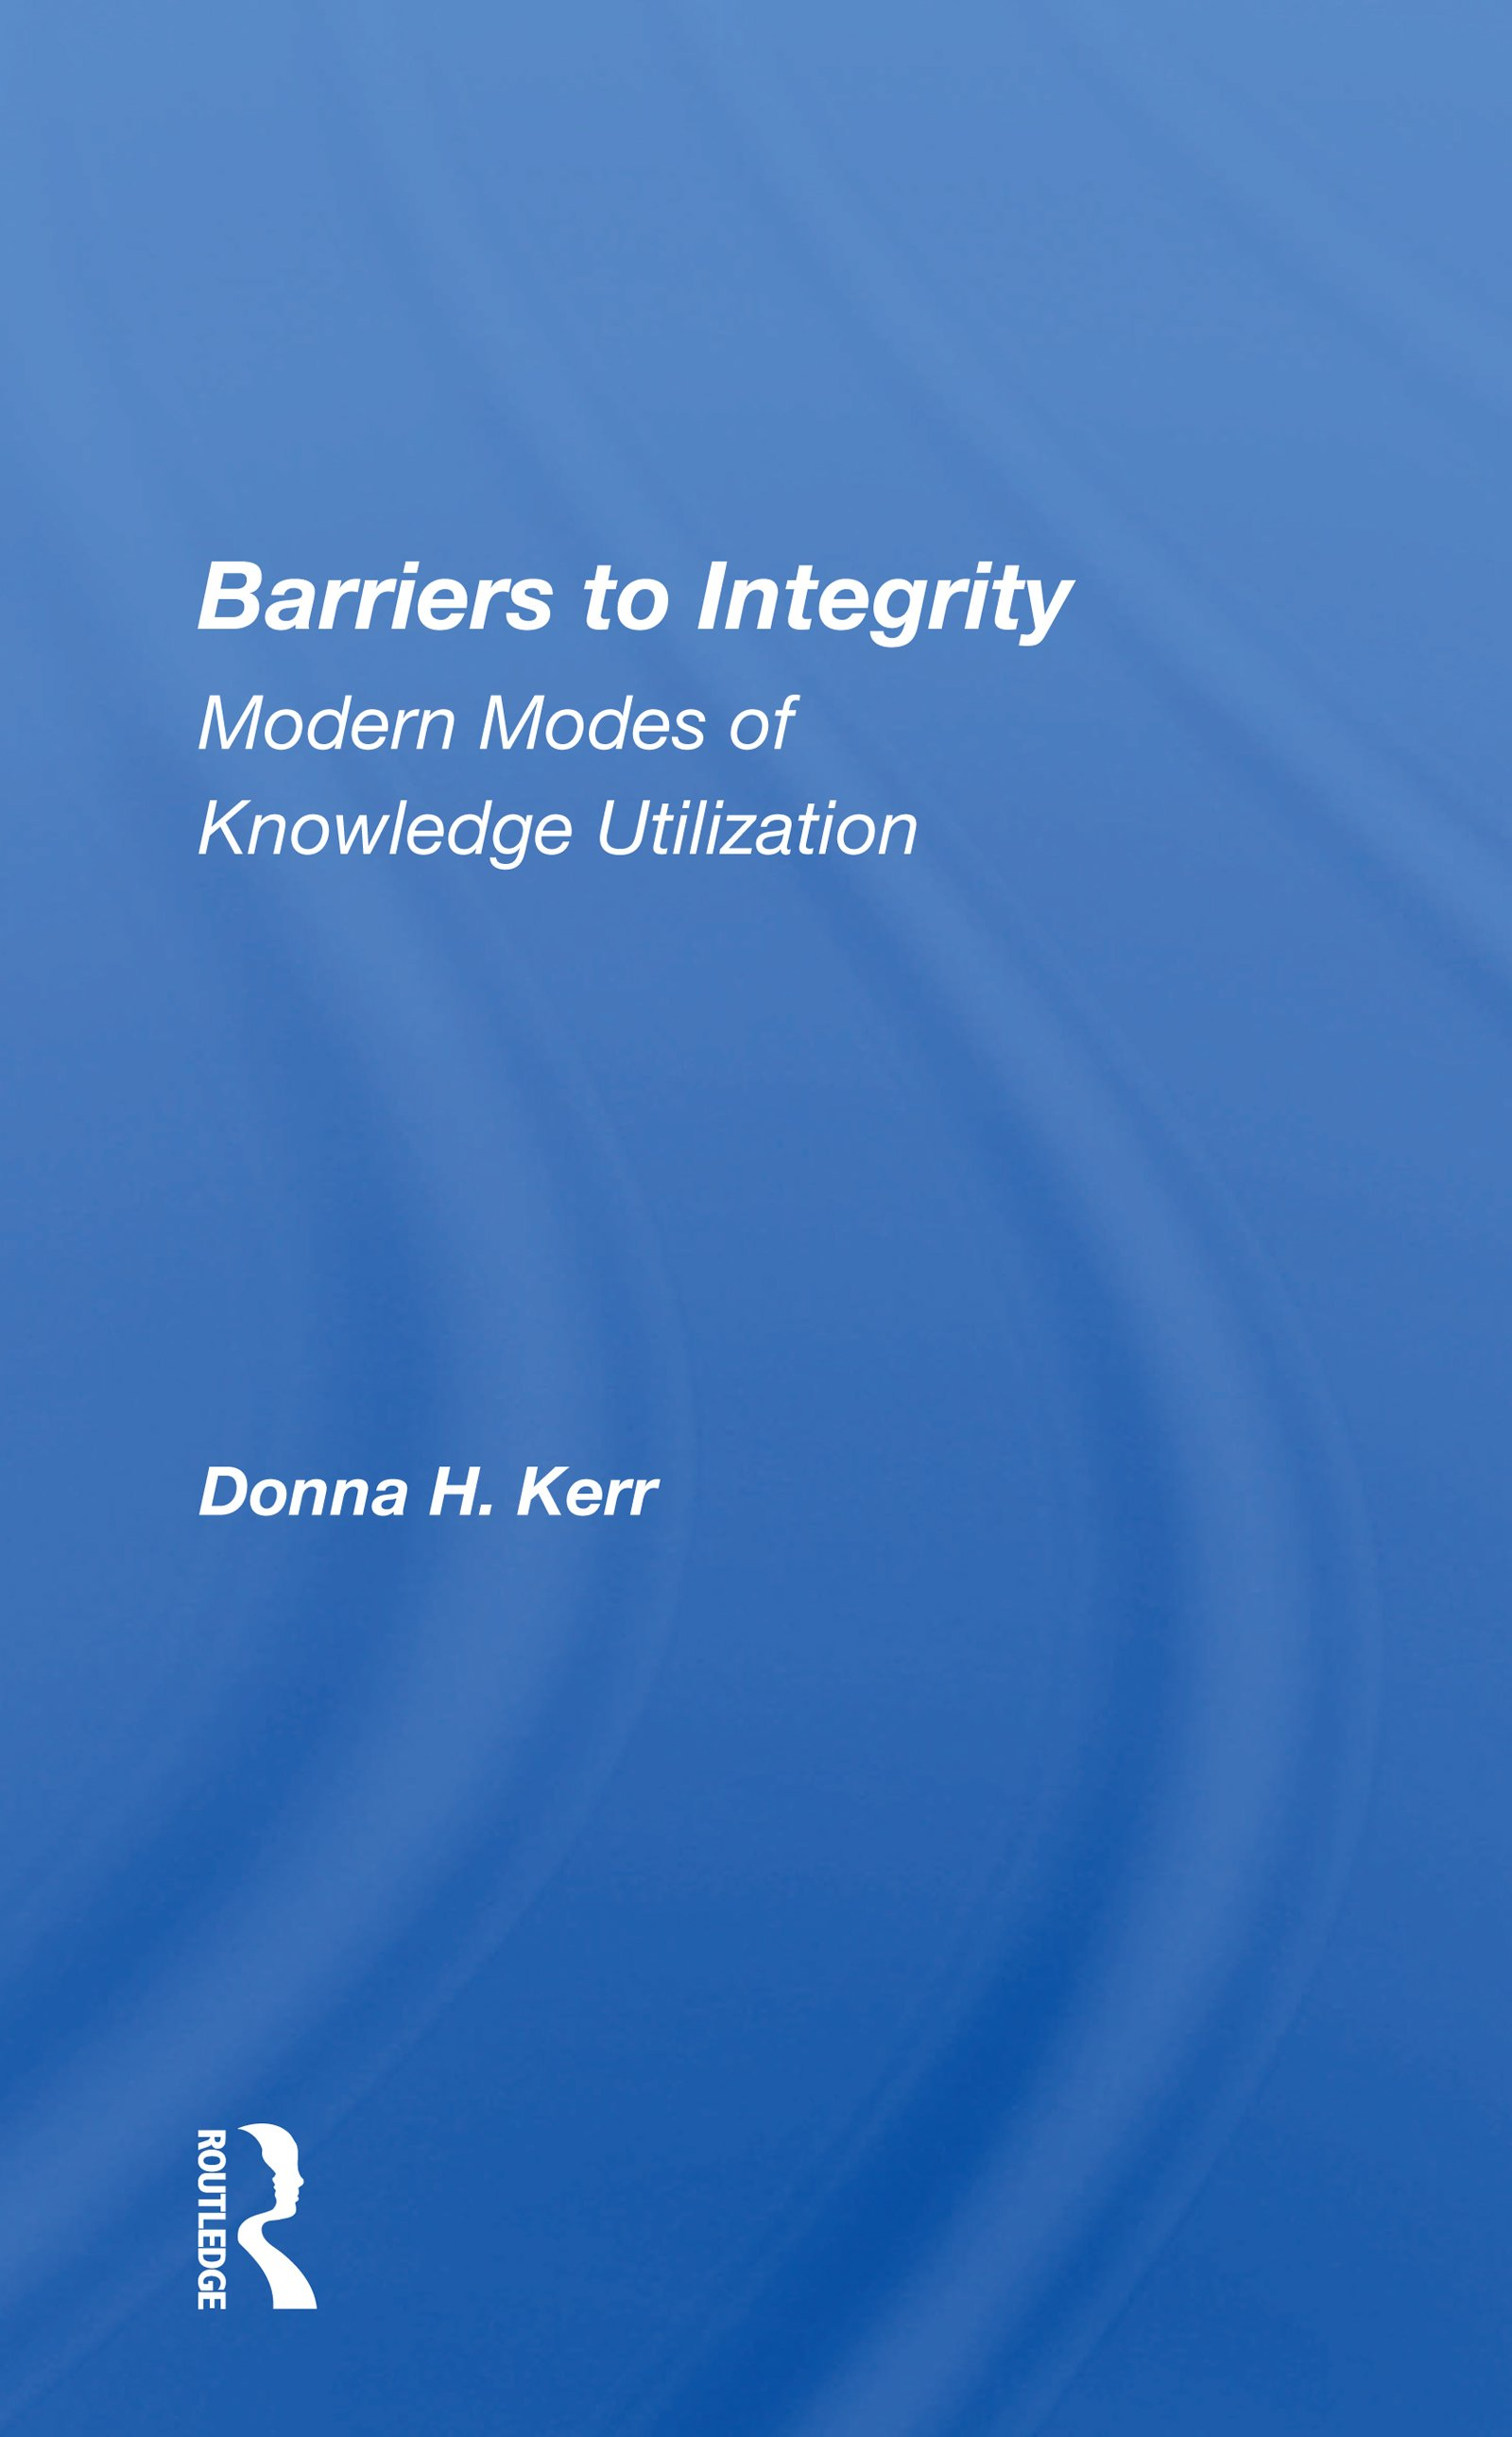 Barriers to Integrity